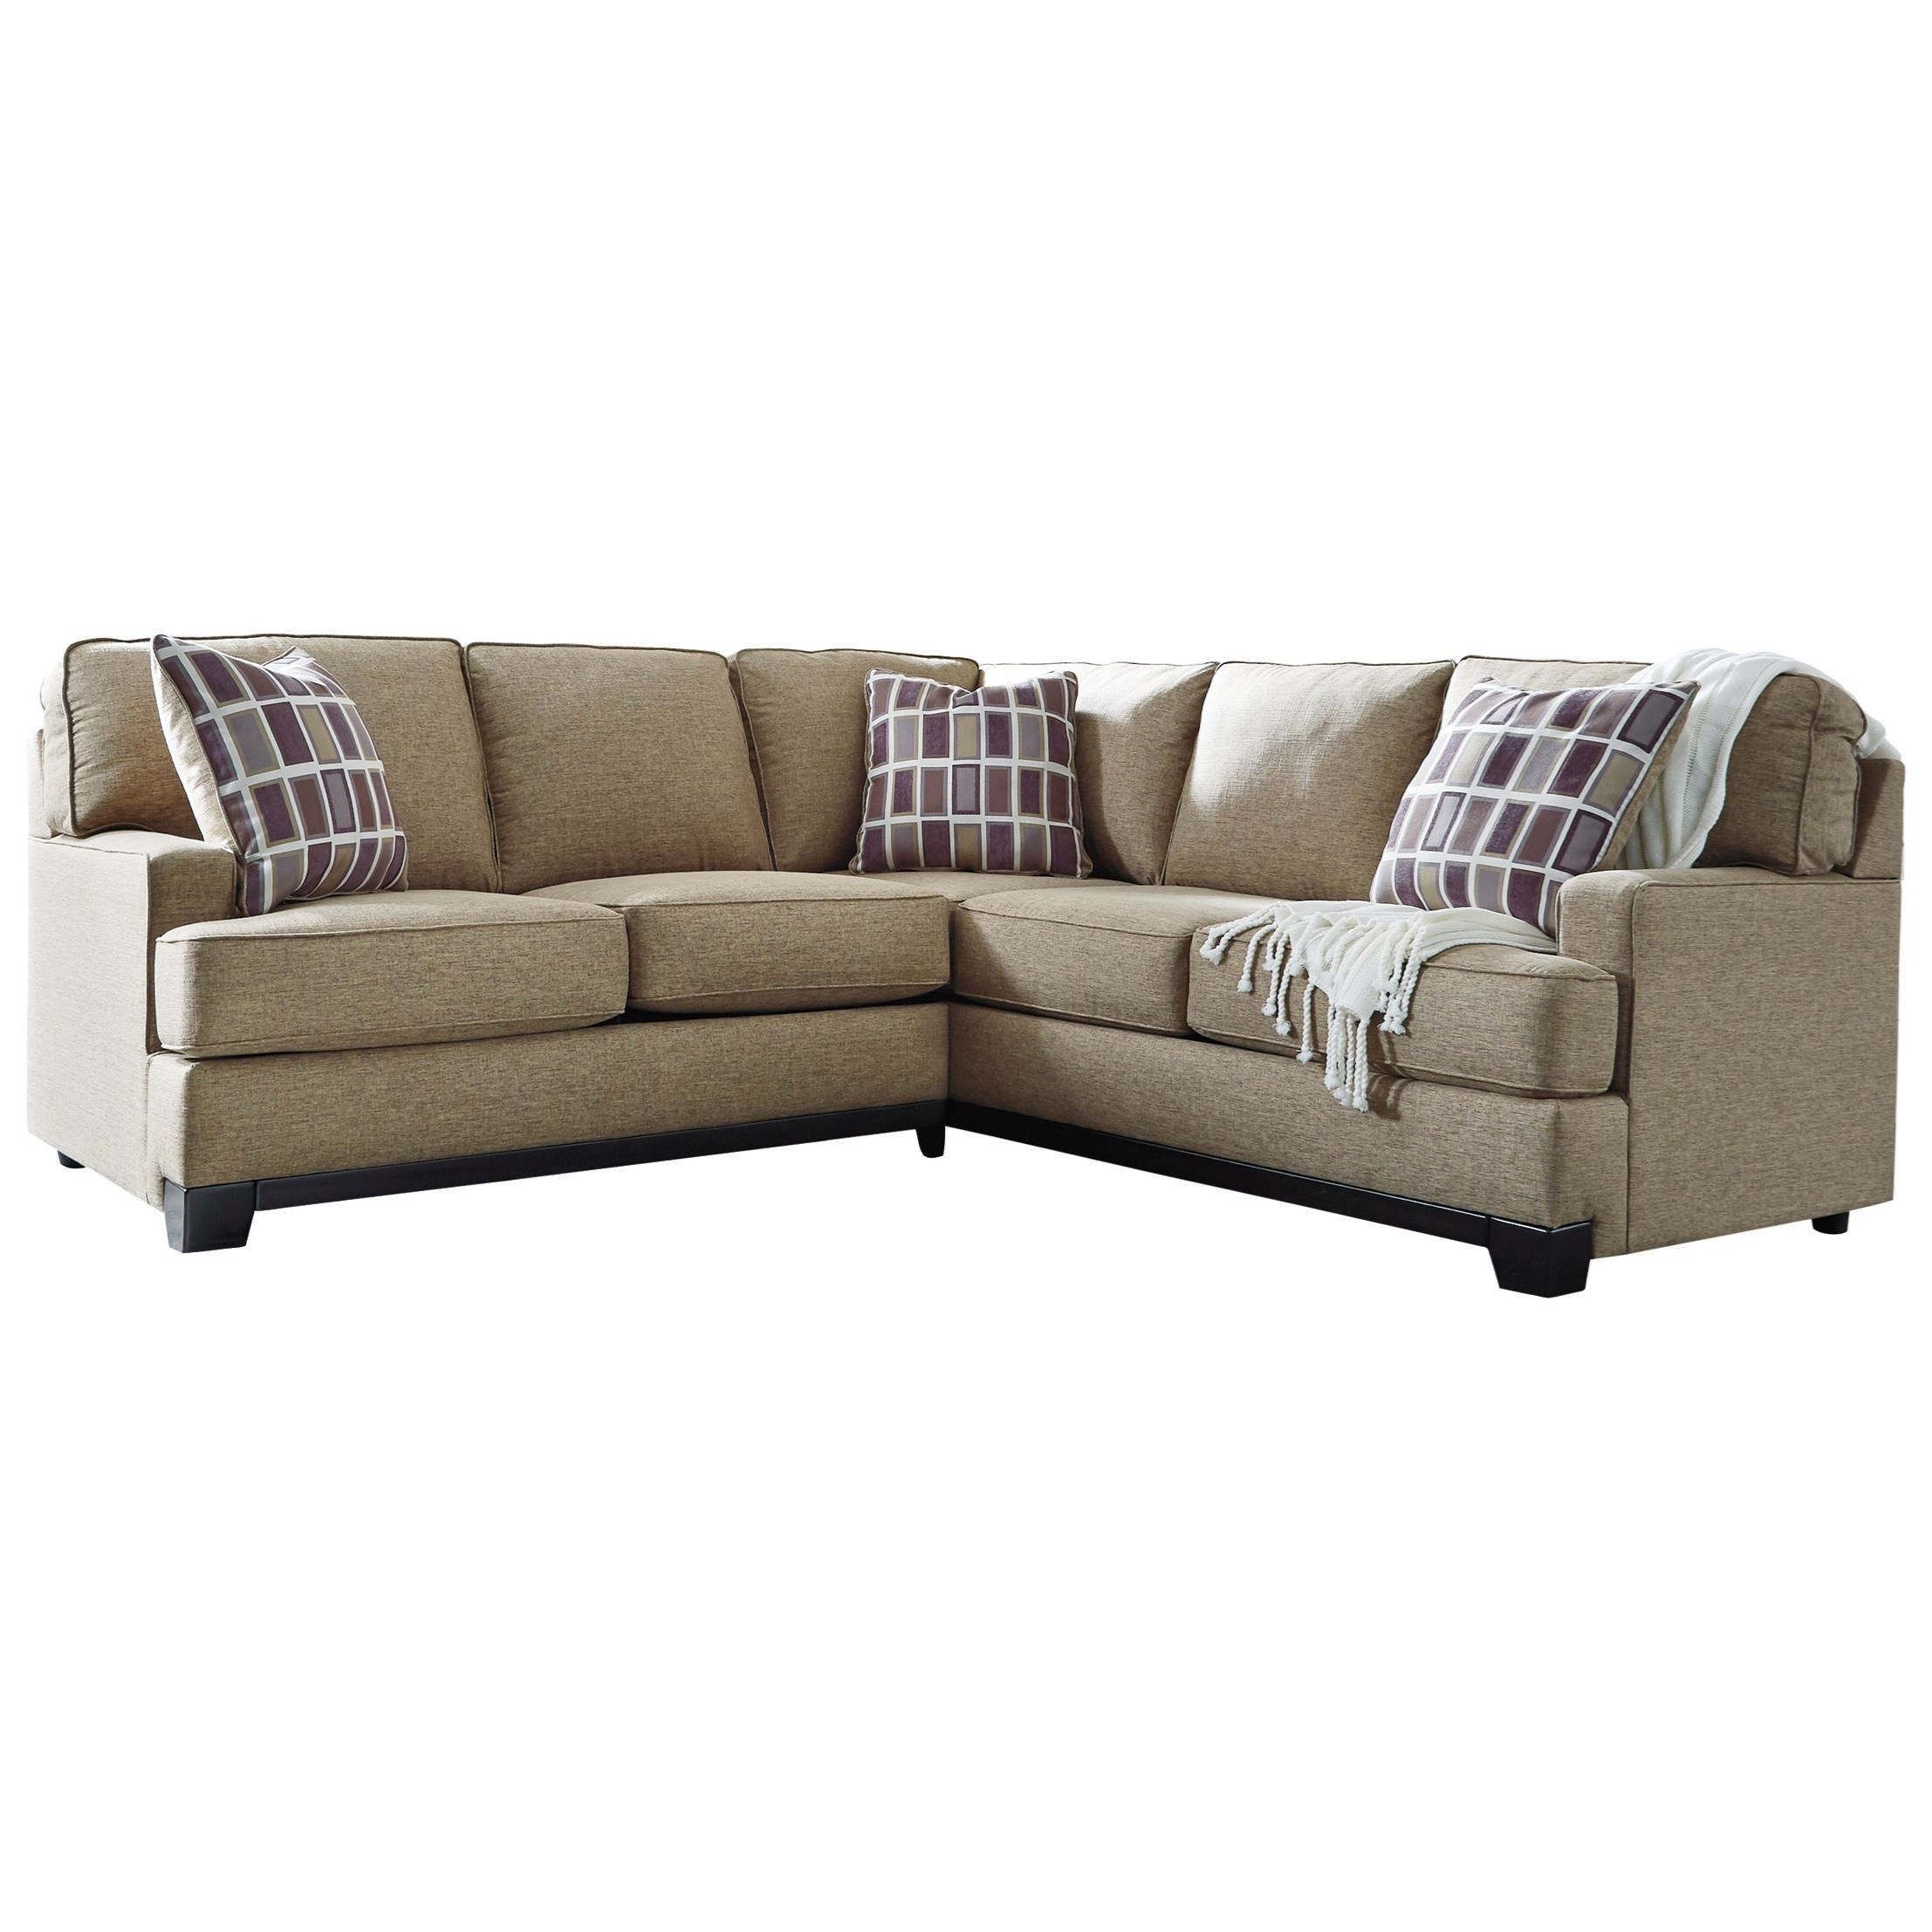 Benchcraft larkhaven contemporary 2 piece sectional with for 2 piece sectional sofa with recliner